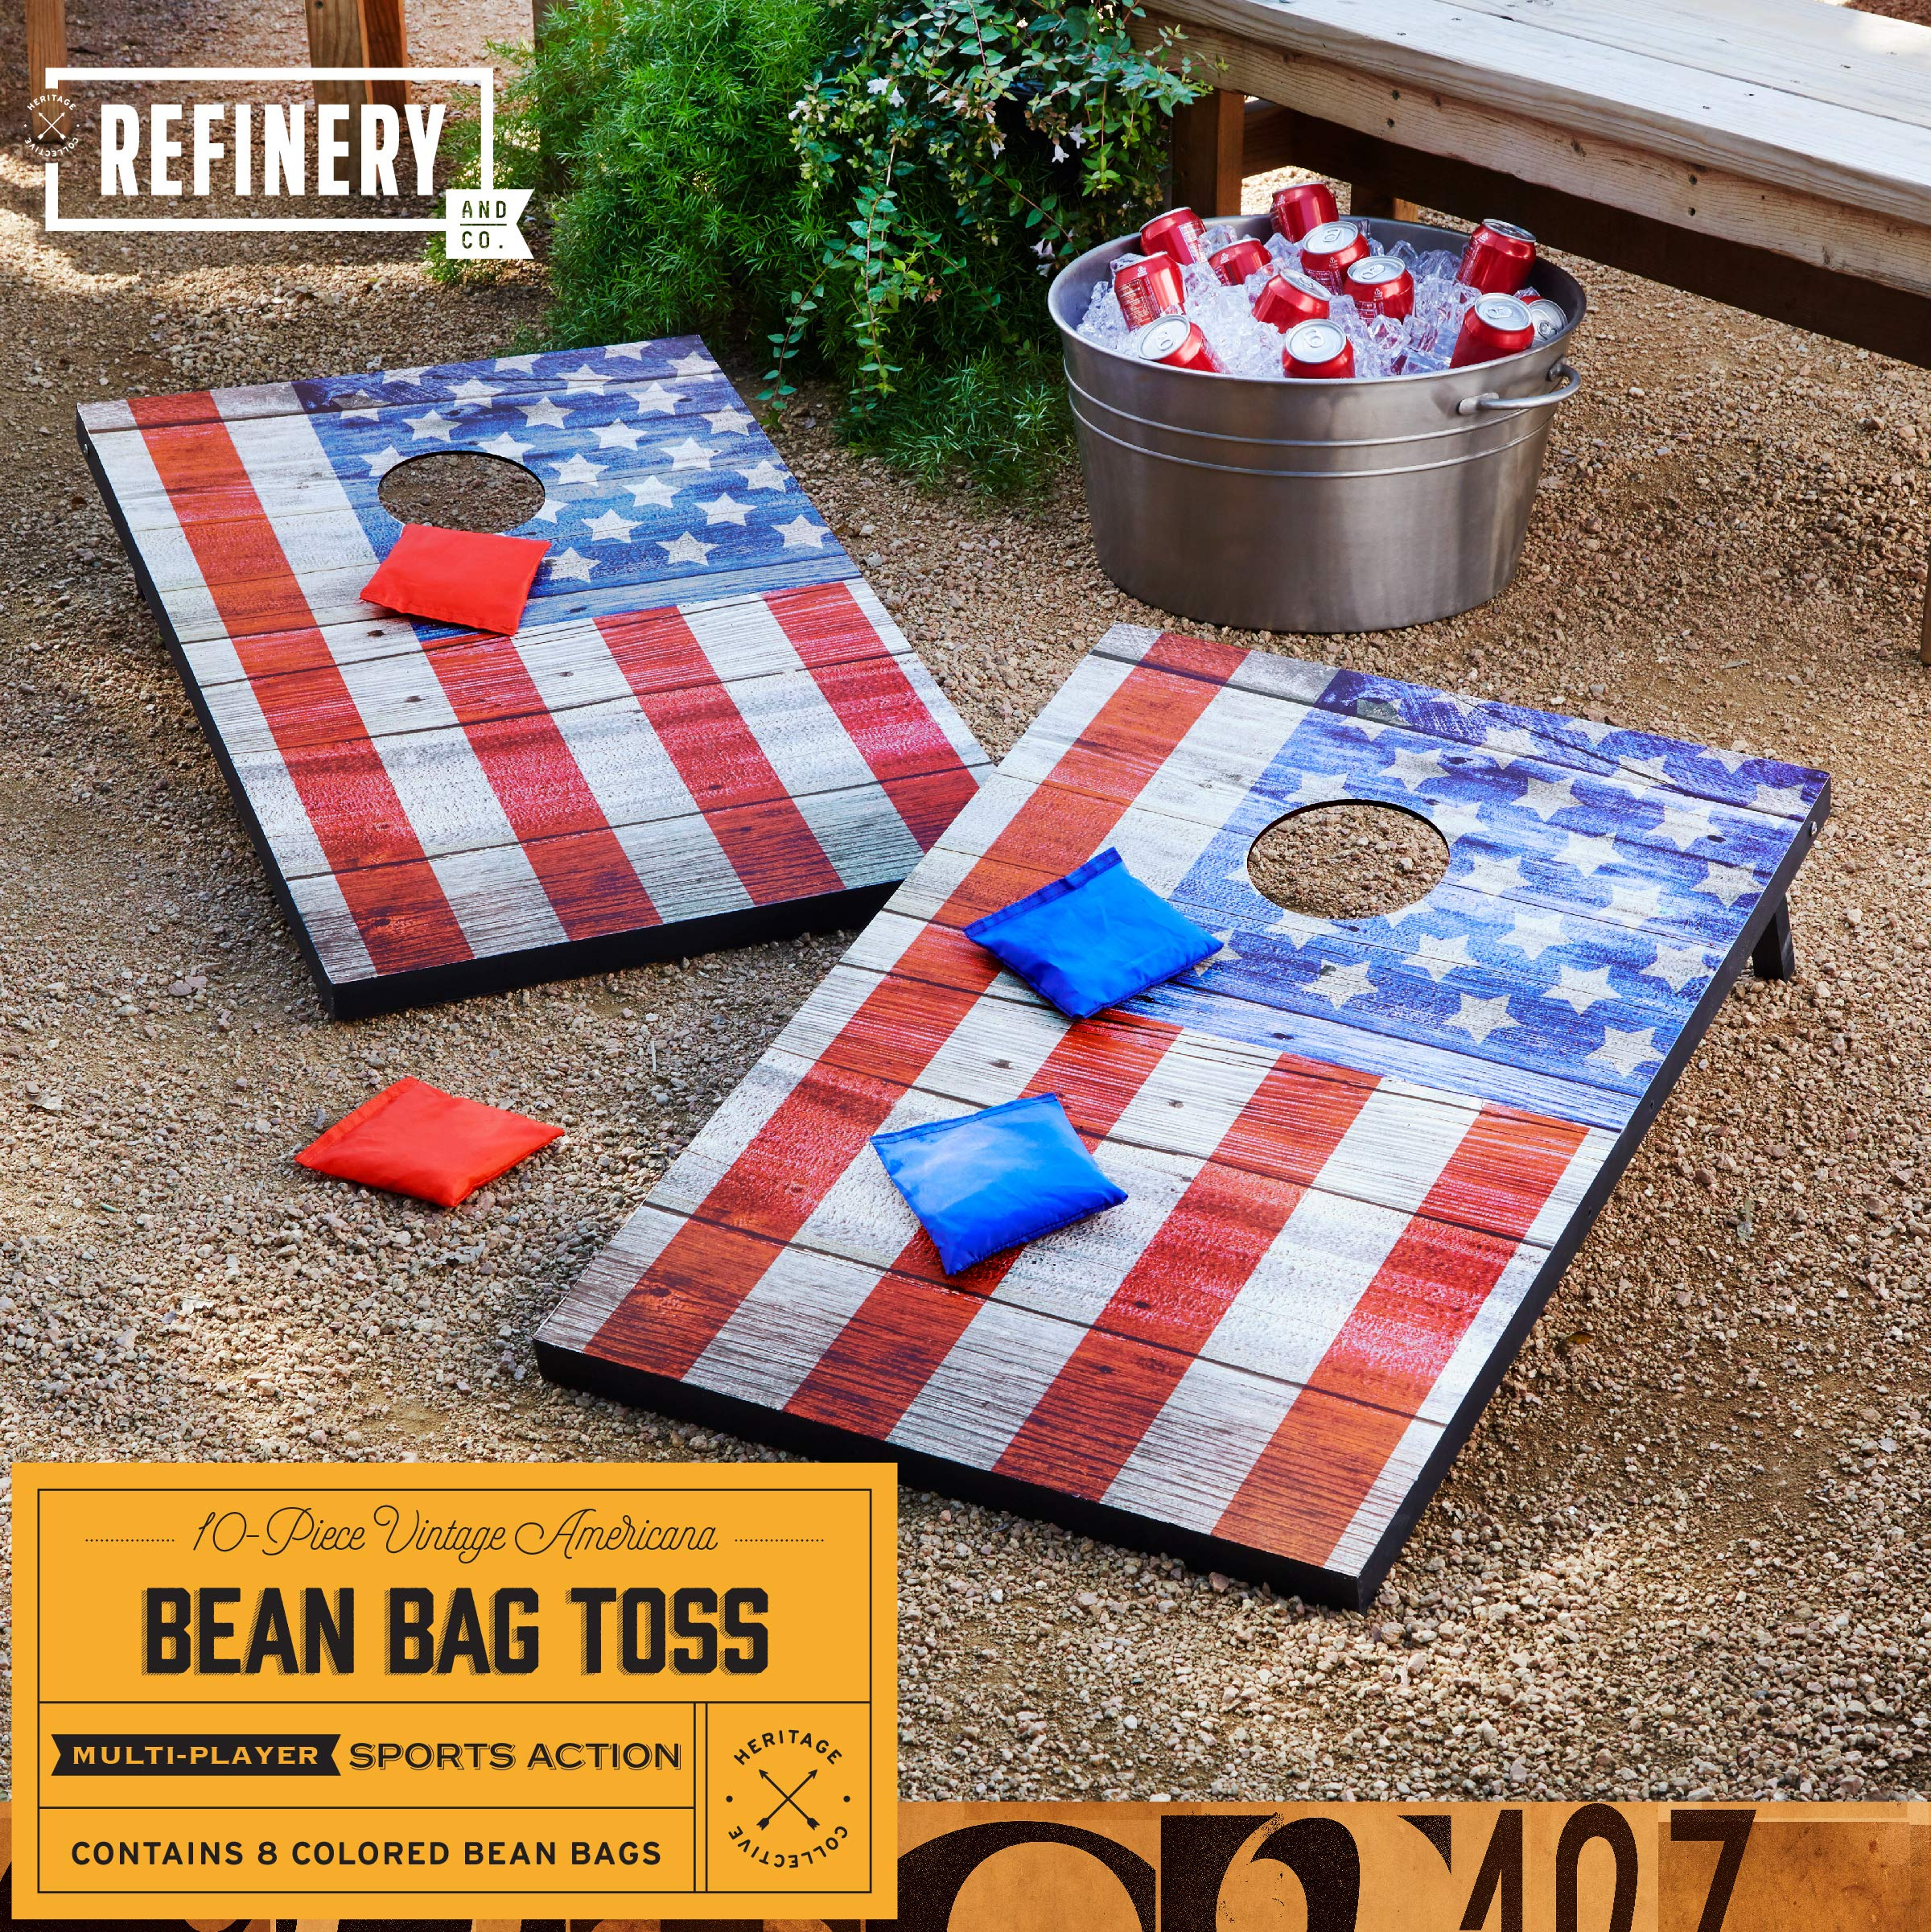 Refinery Vintage Americana Deluxe Bean Bag Toss Set, Complete Cornhole Game, Best Picnic & BBQ Target Sport, 2 Folding Targets, 8 Premium Bean Bags in 2 Colors for Team Play, Easy Storage, Family Fun by Refinery (Image #2)